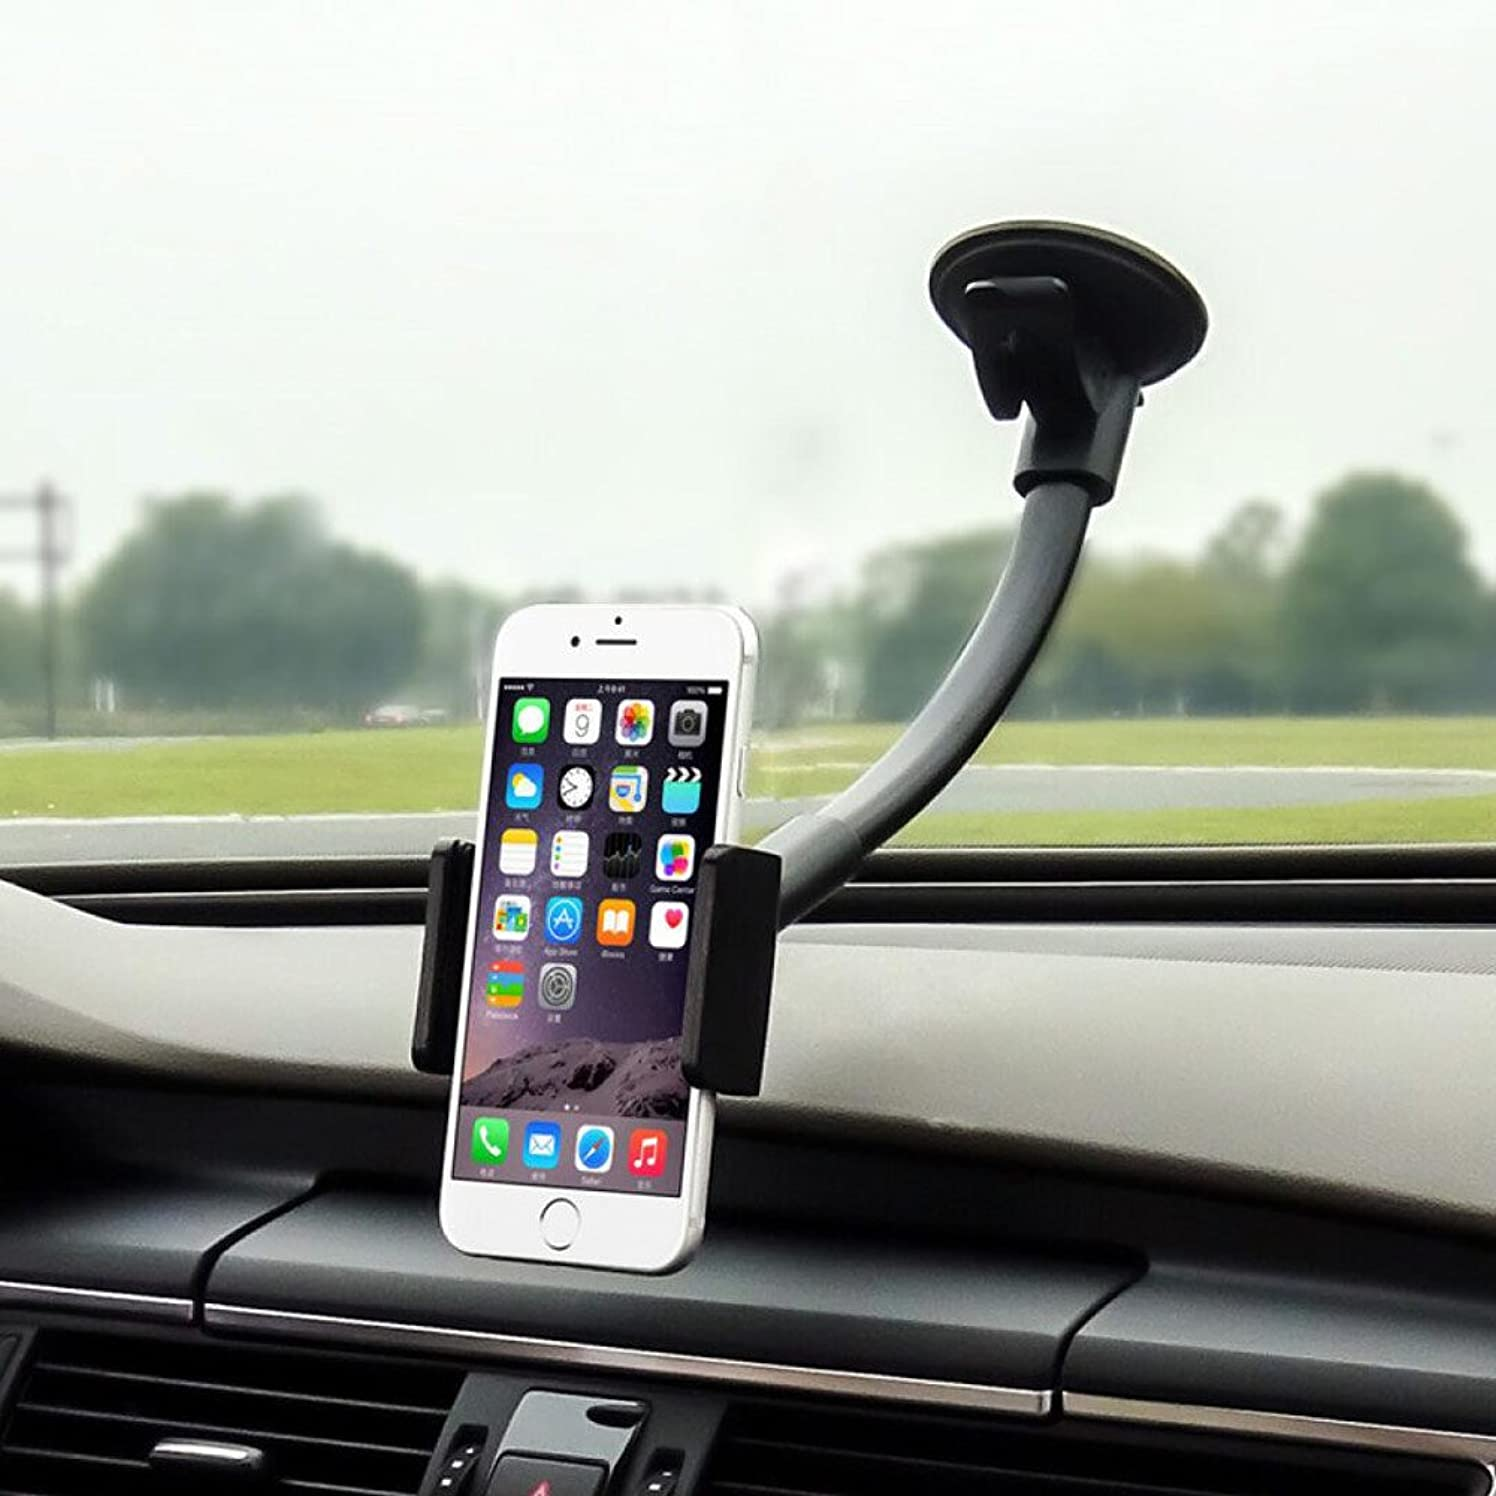 Cell Phone Holder for Car, MTWhirldy 10.6in Long Arm, Universal Car Cradles Mounts Windshield/Dashboard for iPhone X 8 Plus 6 Plus 6S 5S Samsung Galaxy S8 S7 Nexus Stands